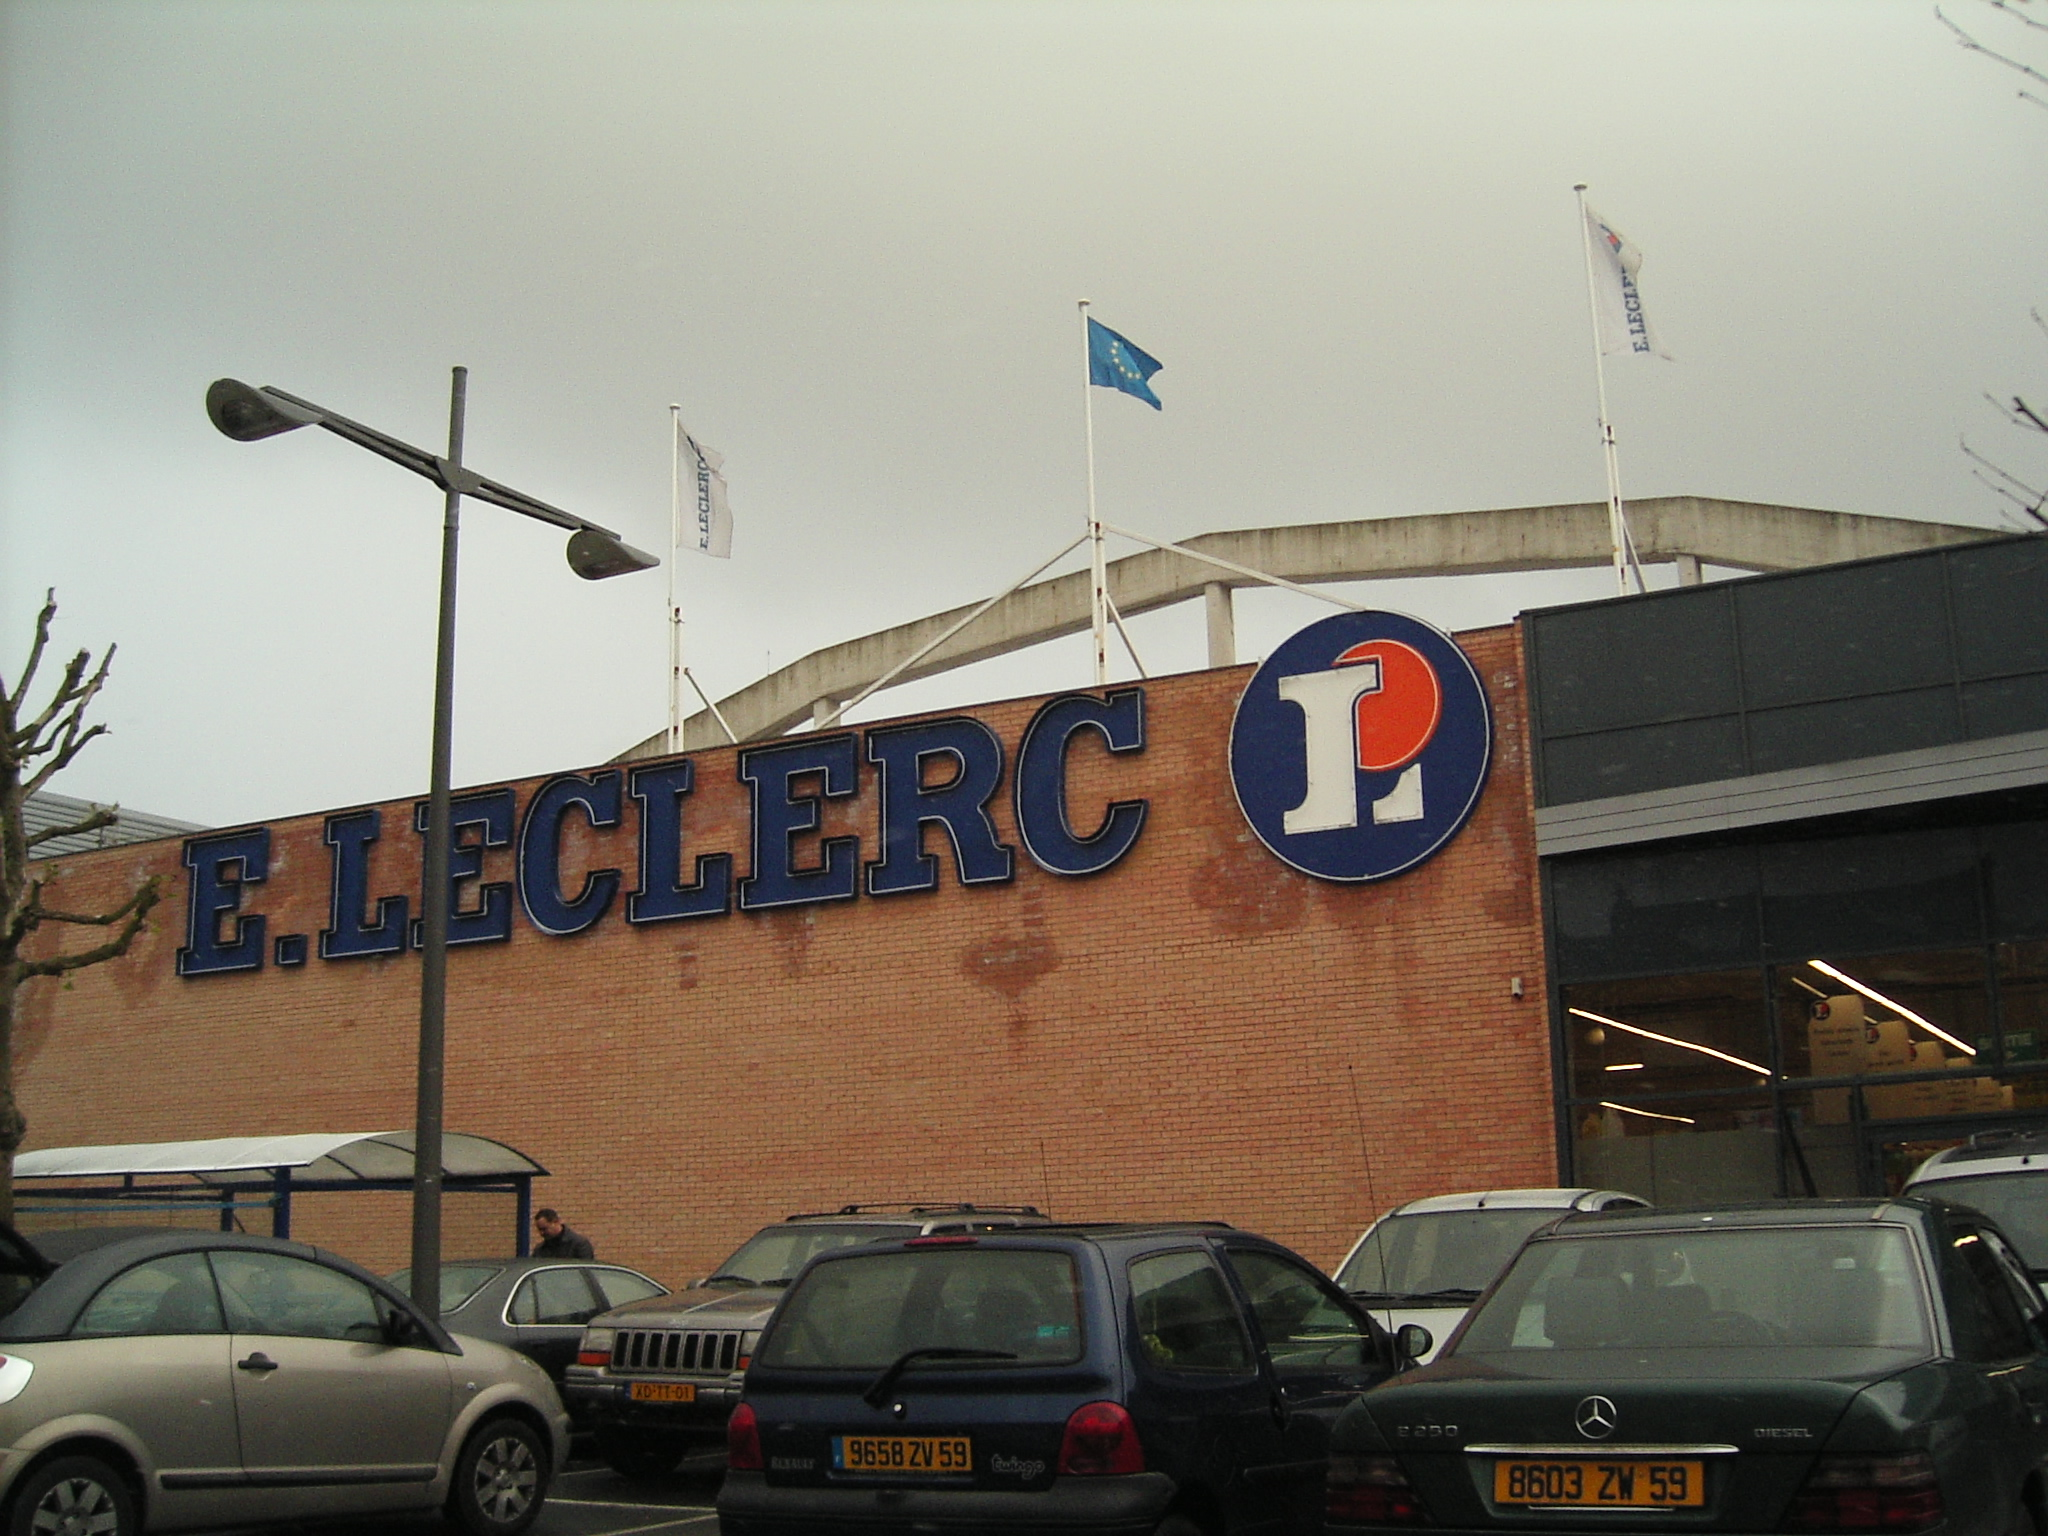 Retailers in France, E.Leclerc